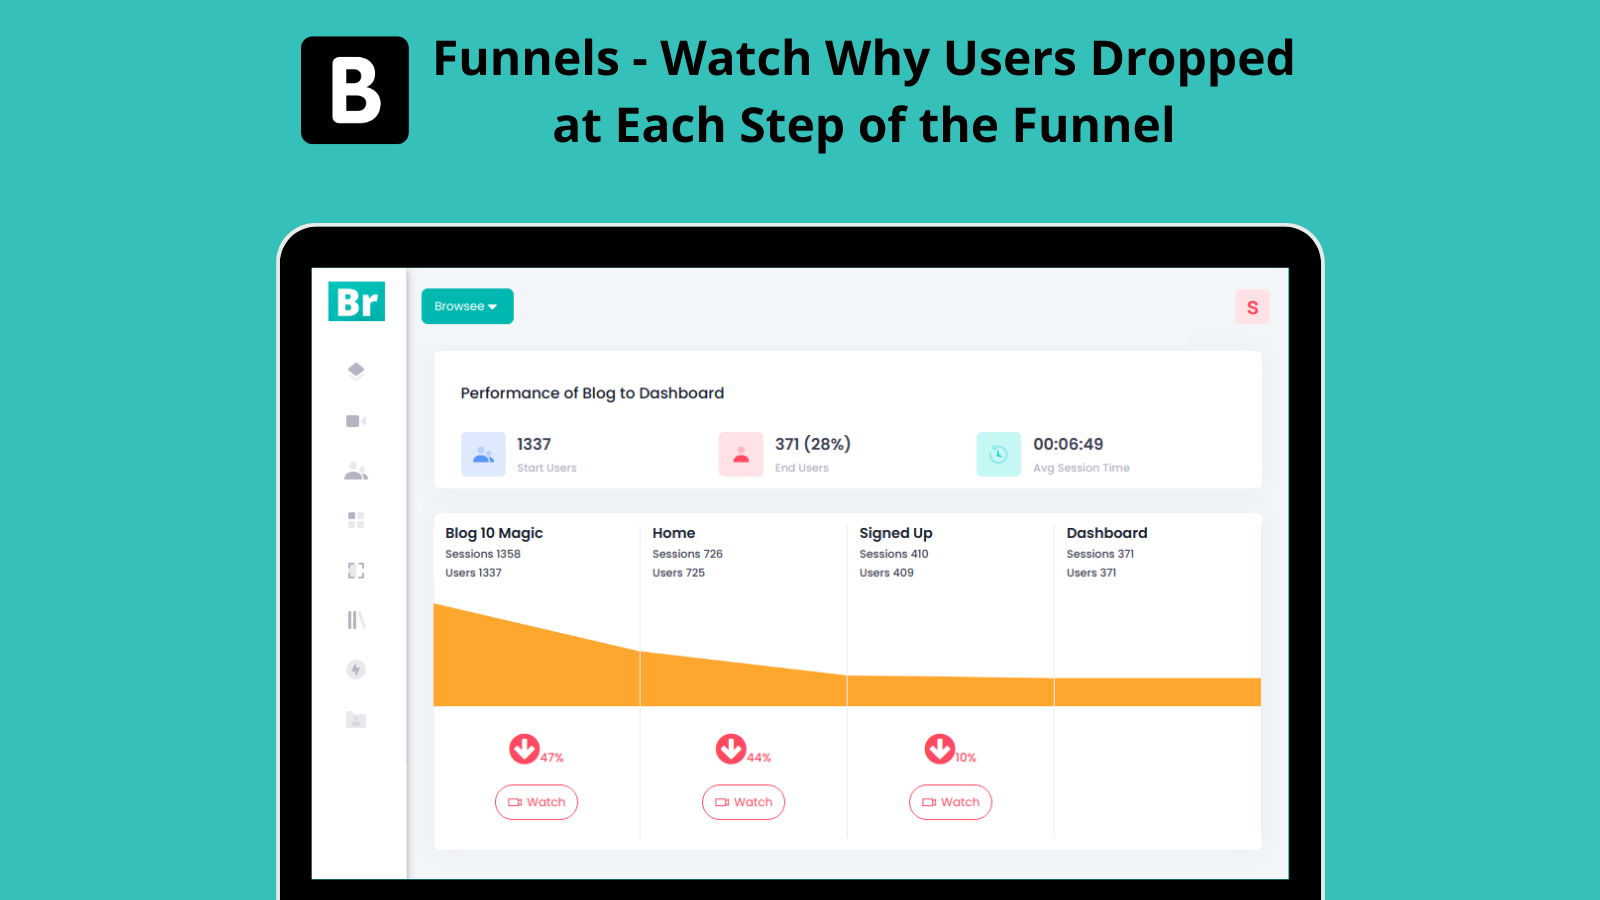 Funnels - Watch Why Users Dropped at Each Step of the Funnel